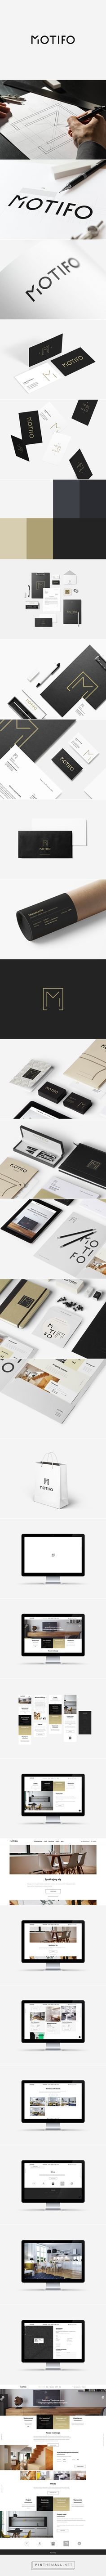 MOTIFO - Interior Design Architect | Branding & Website on Behance - created via http://pinthemall.net